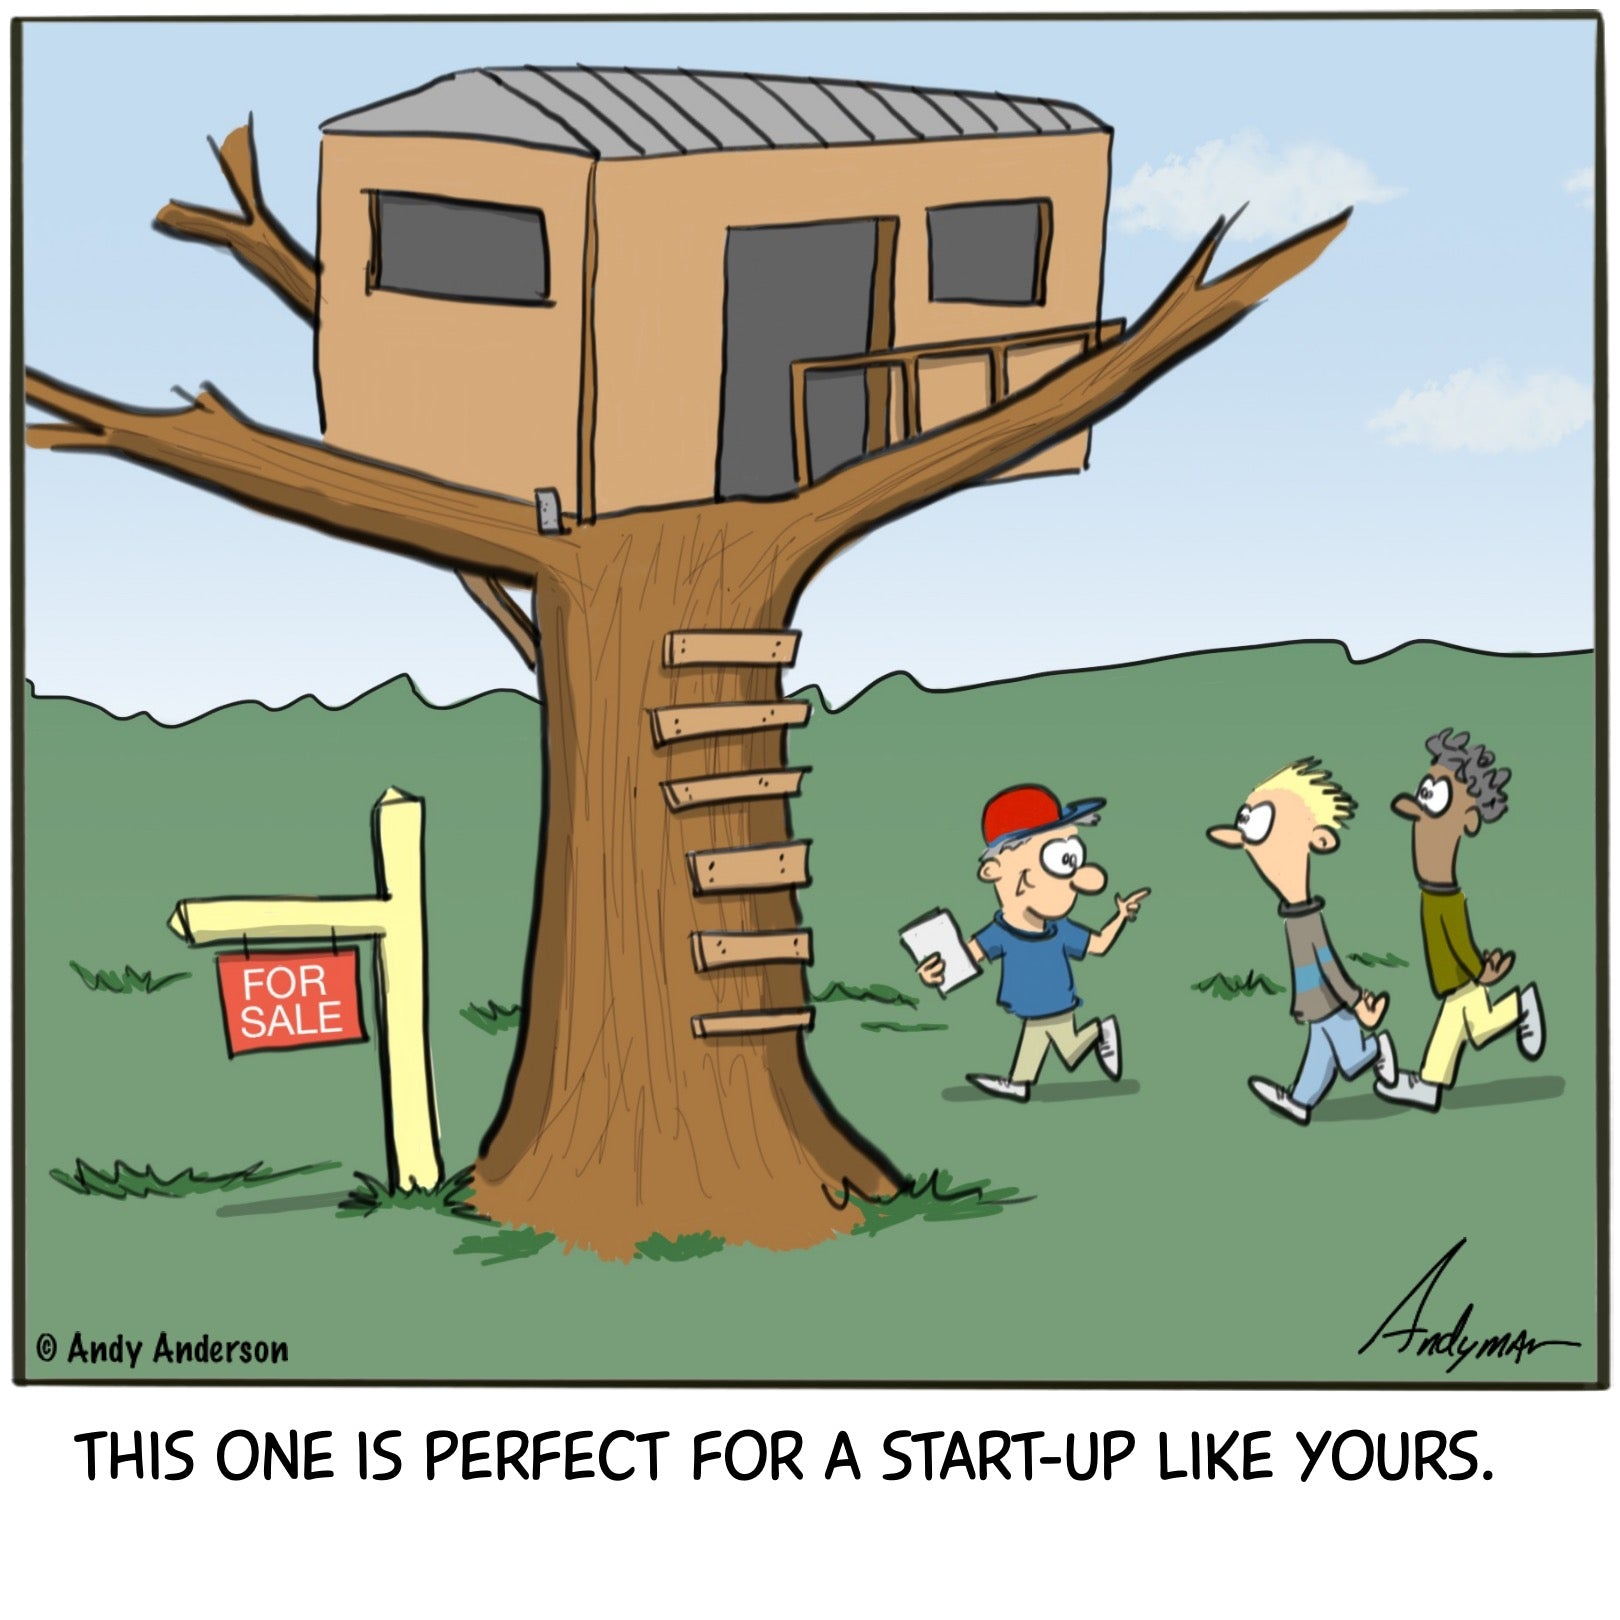 Cartoon about tree house realty by Andy Anderson